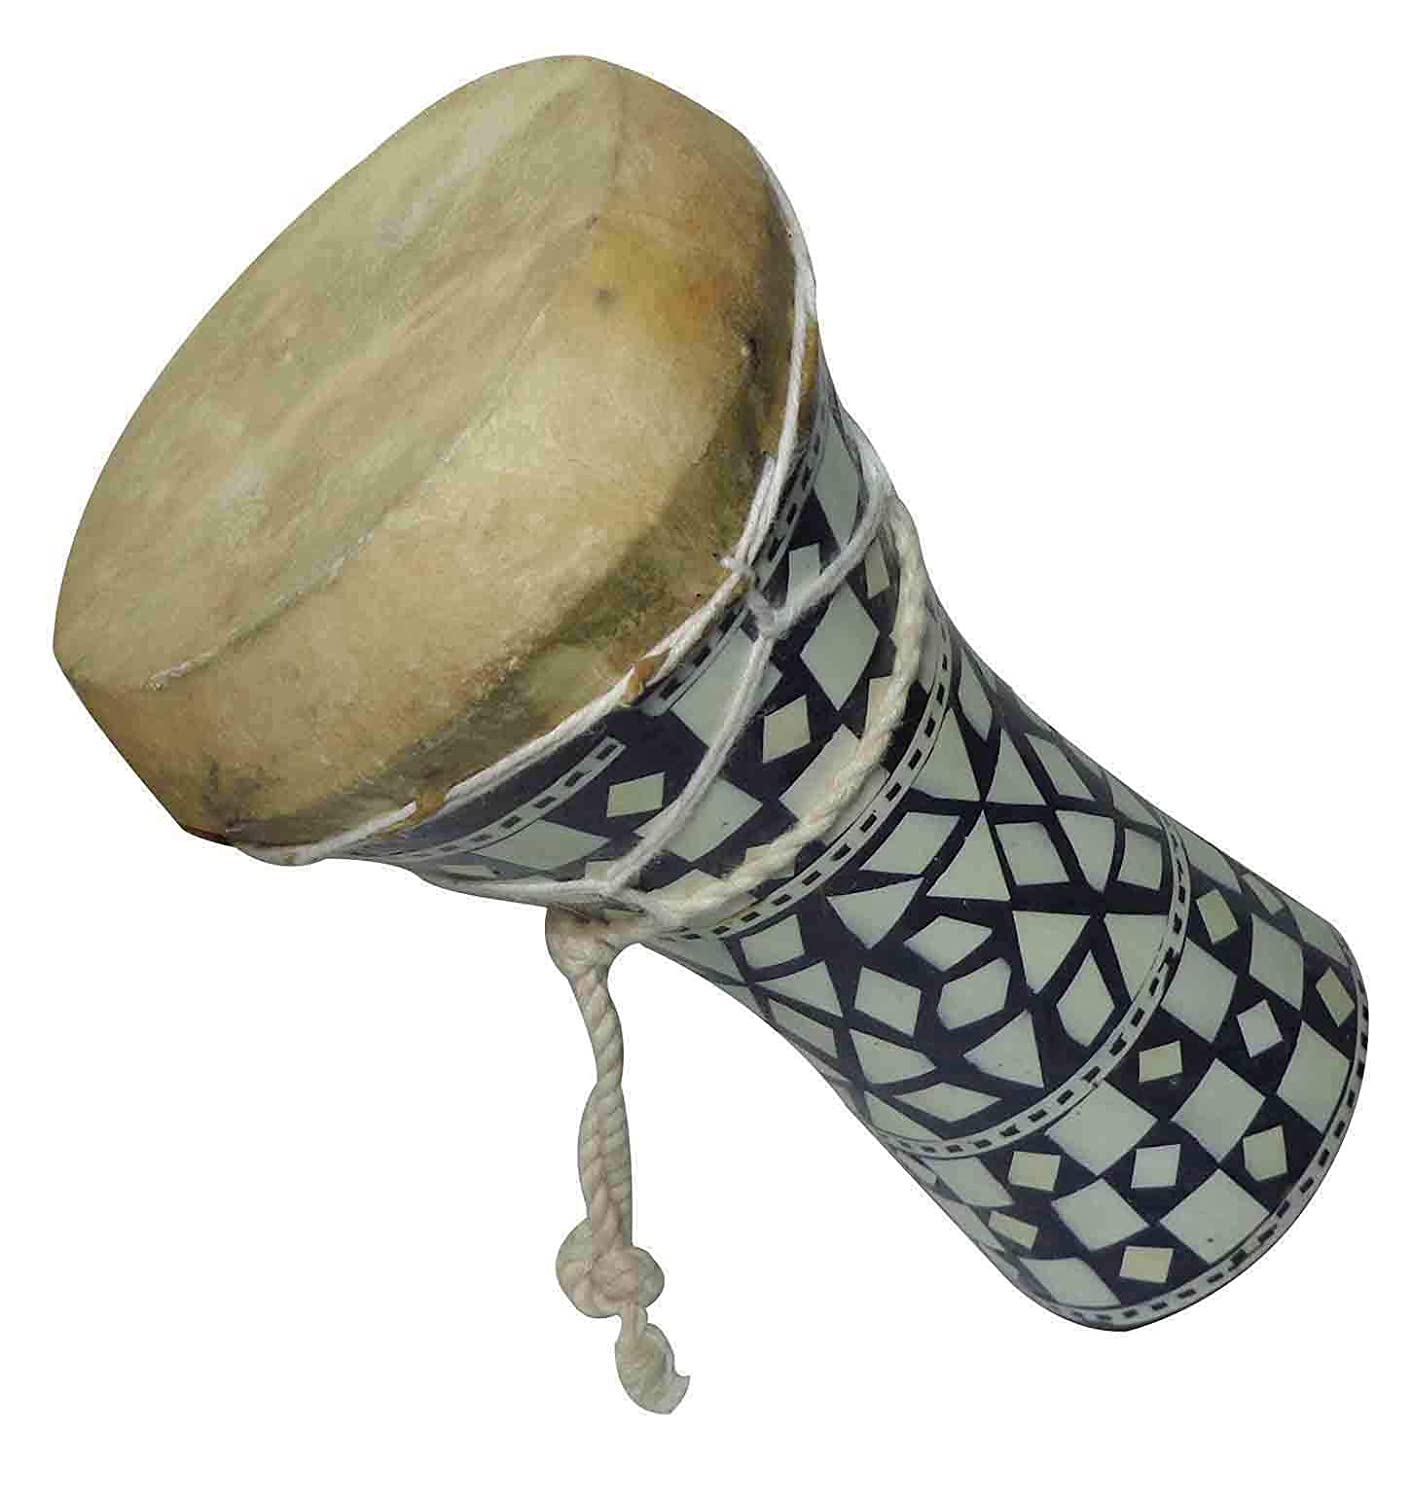 "1Pcs Small Egyptian Wooden Tabla Drum Doumbek Goat Skin Mosaic 6"" Handmade (425)"